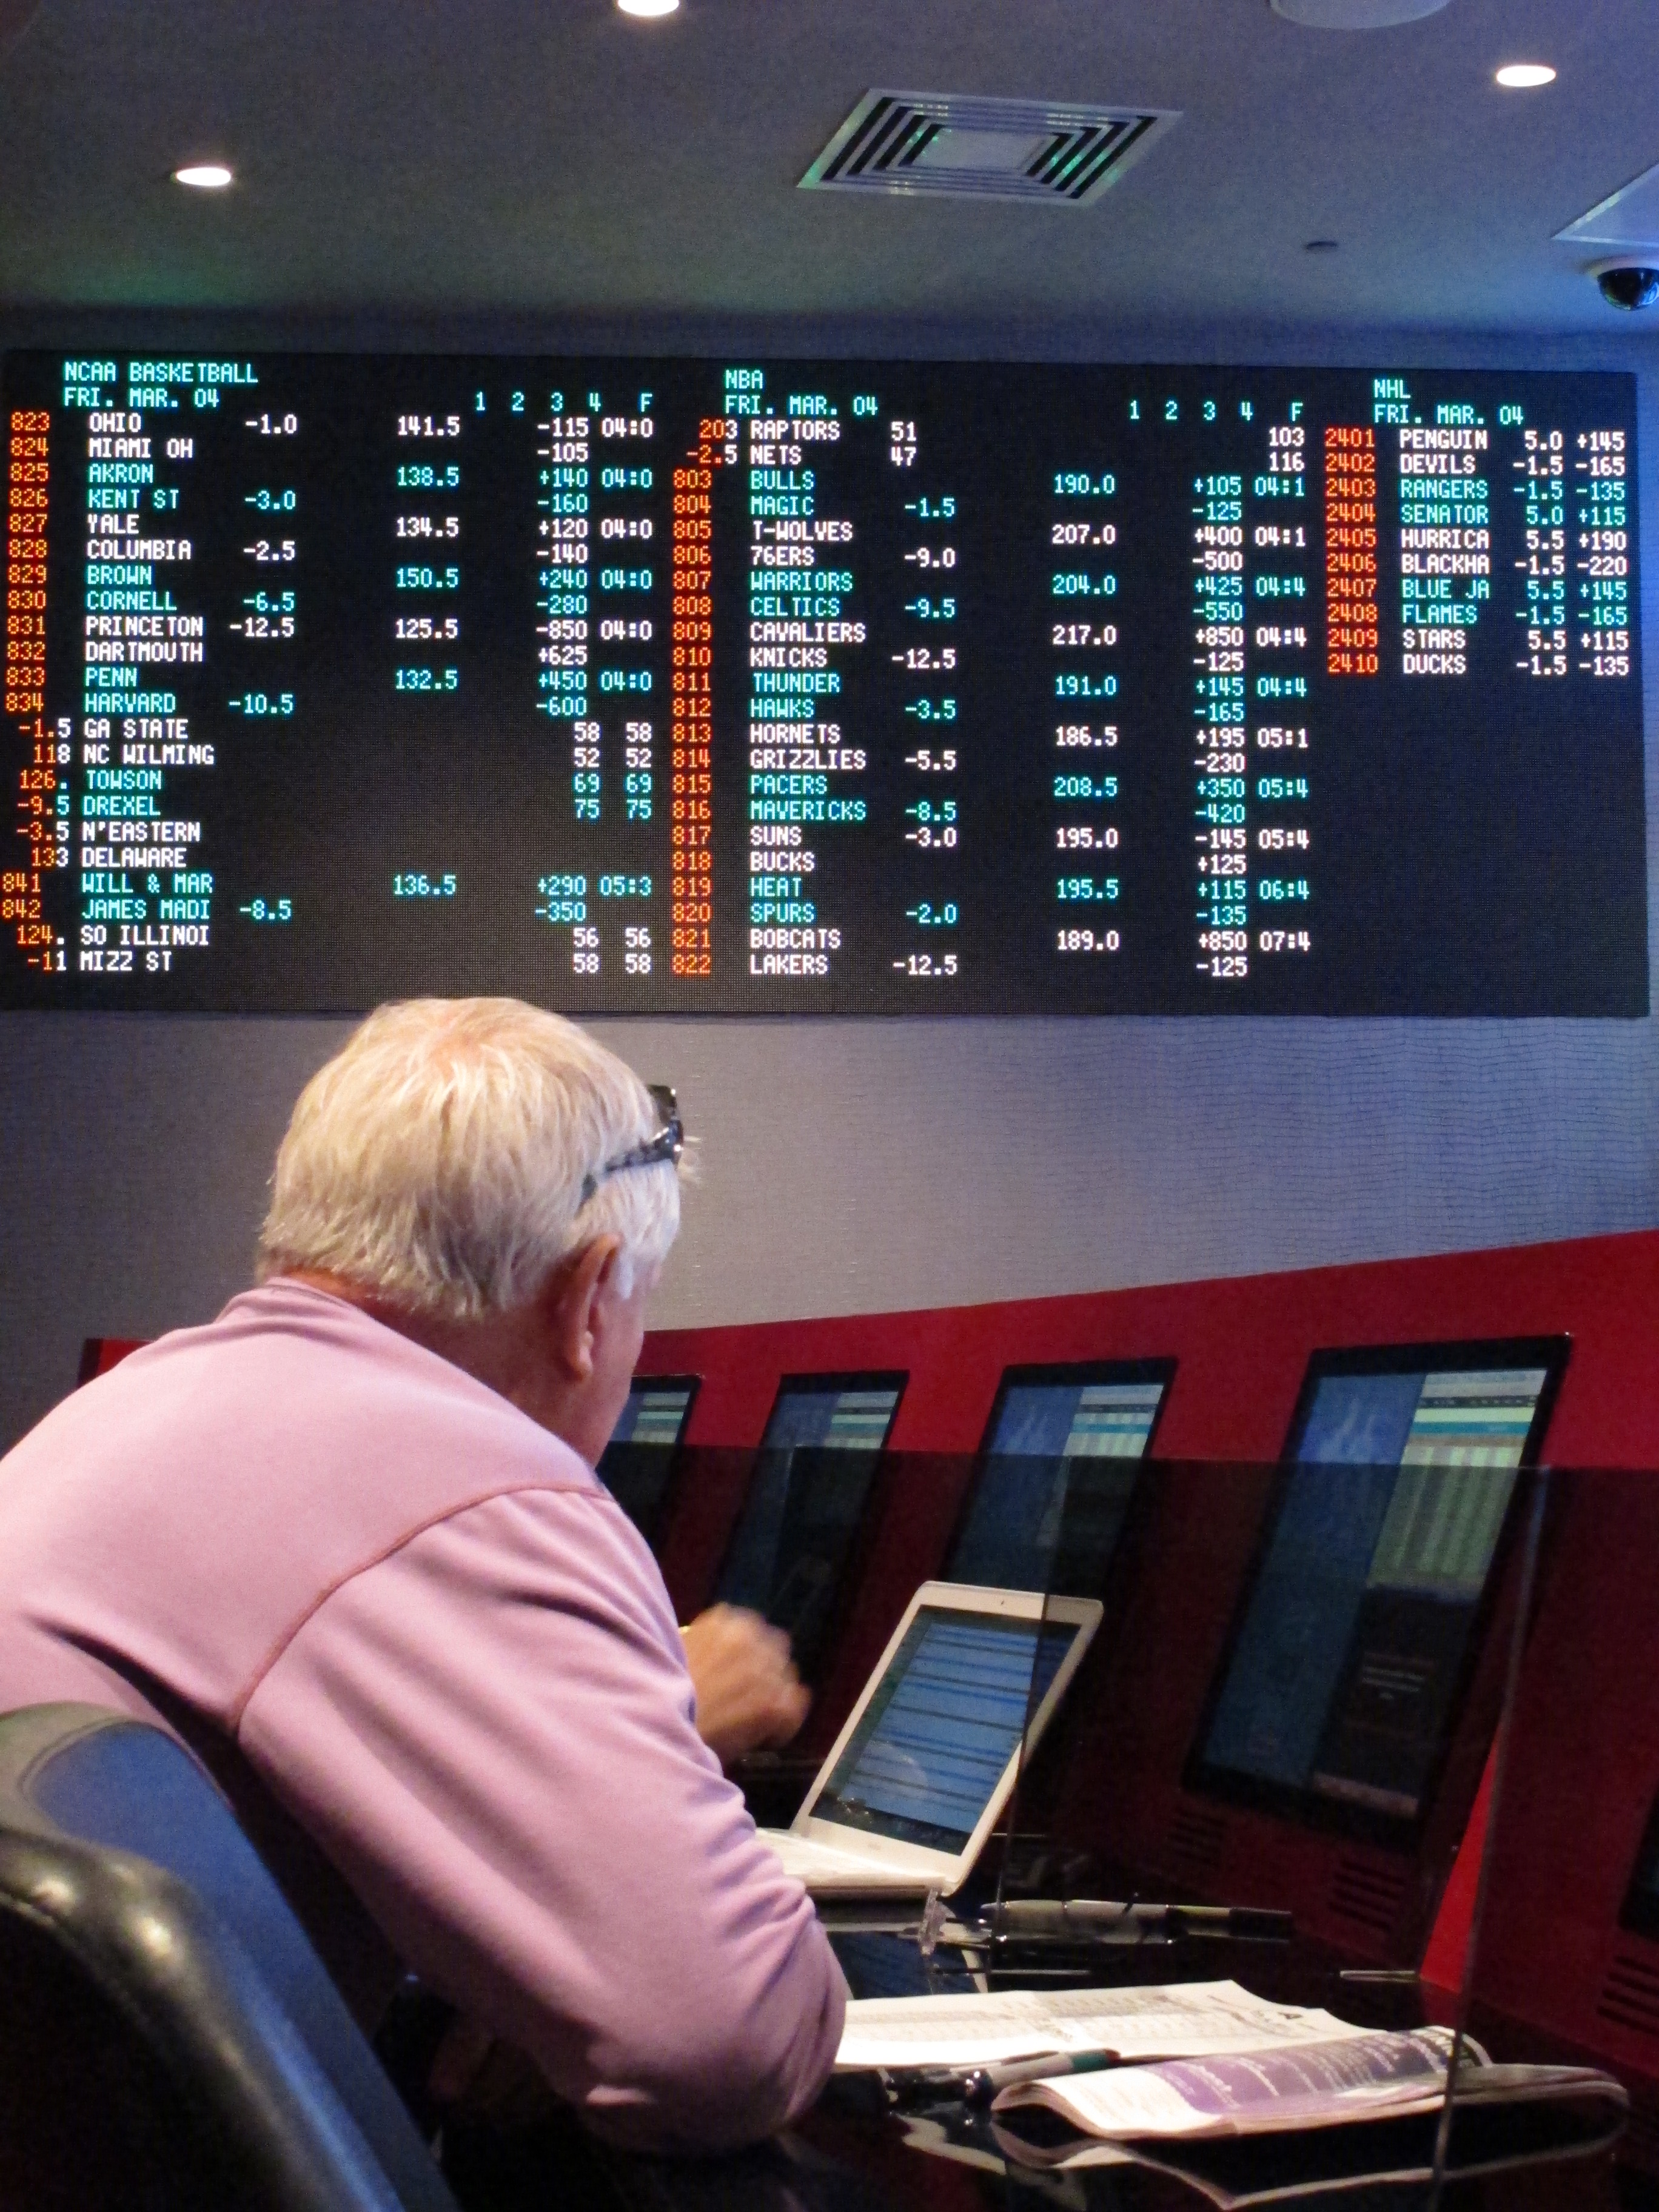 New Jersey could see Las Vegas-style sports wagering very soon. (AP)